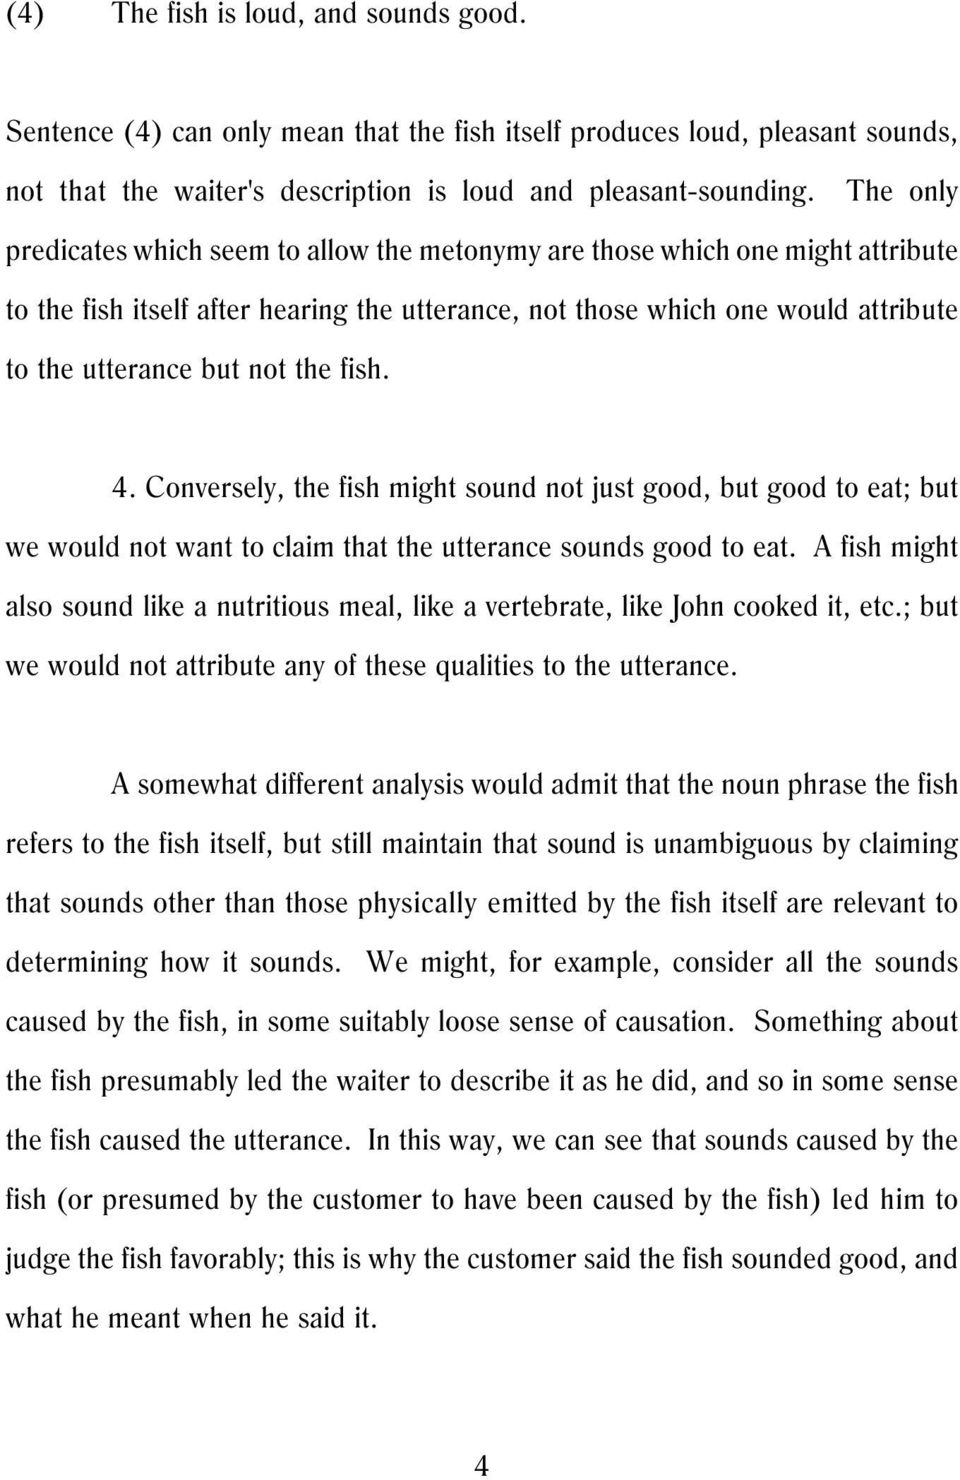 the fish. 4. Conversely, the fish might sound not just good, but good to eat; but we would not want to claim that the utterance sounds good to eat.